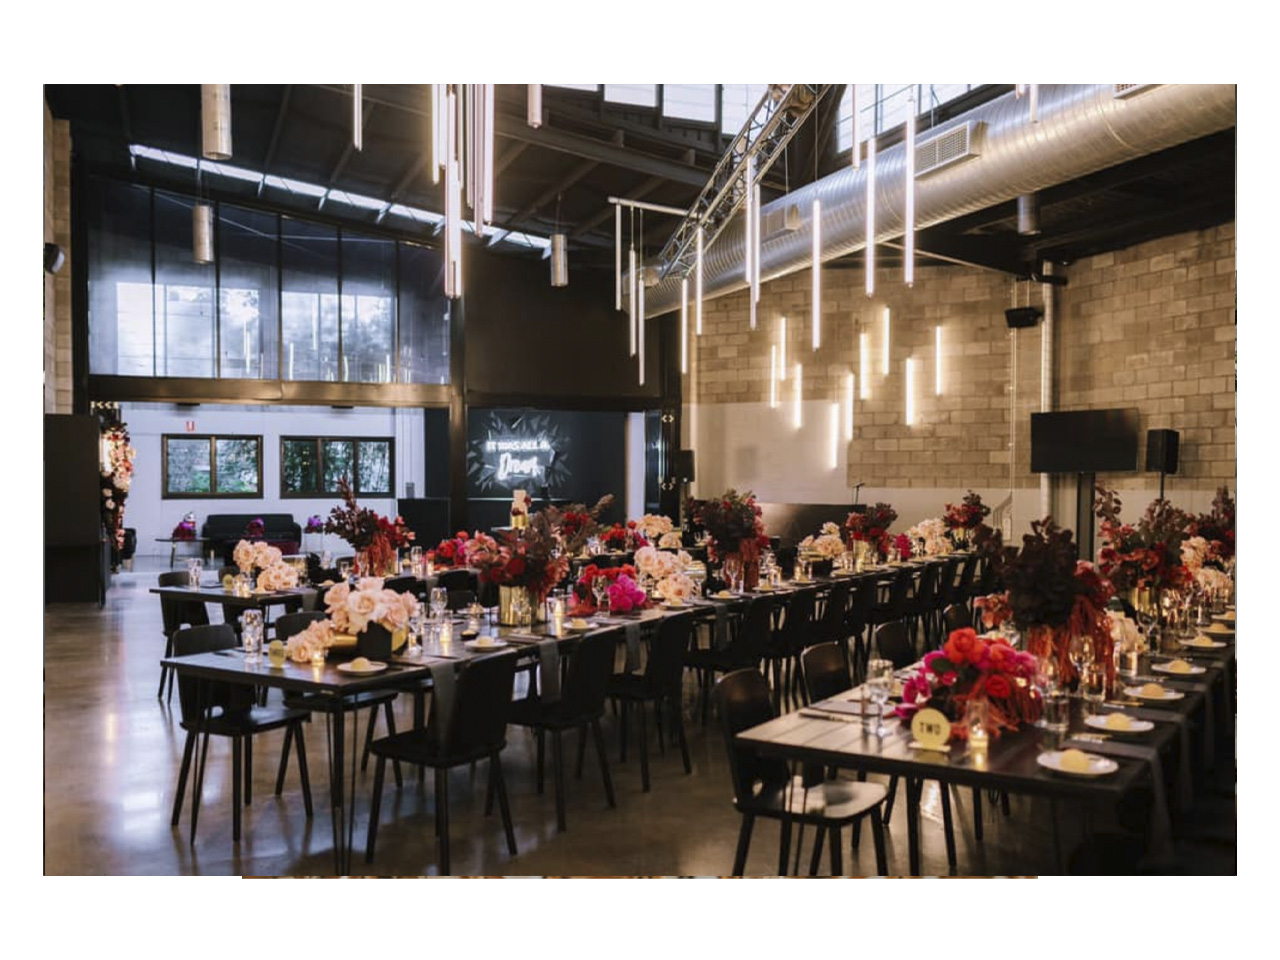 Unique Brisbane wedding venue with long tables decorated for function